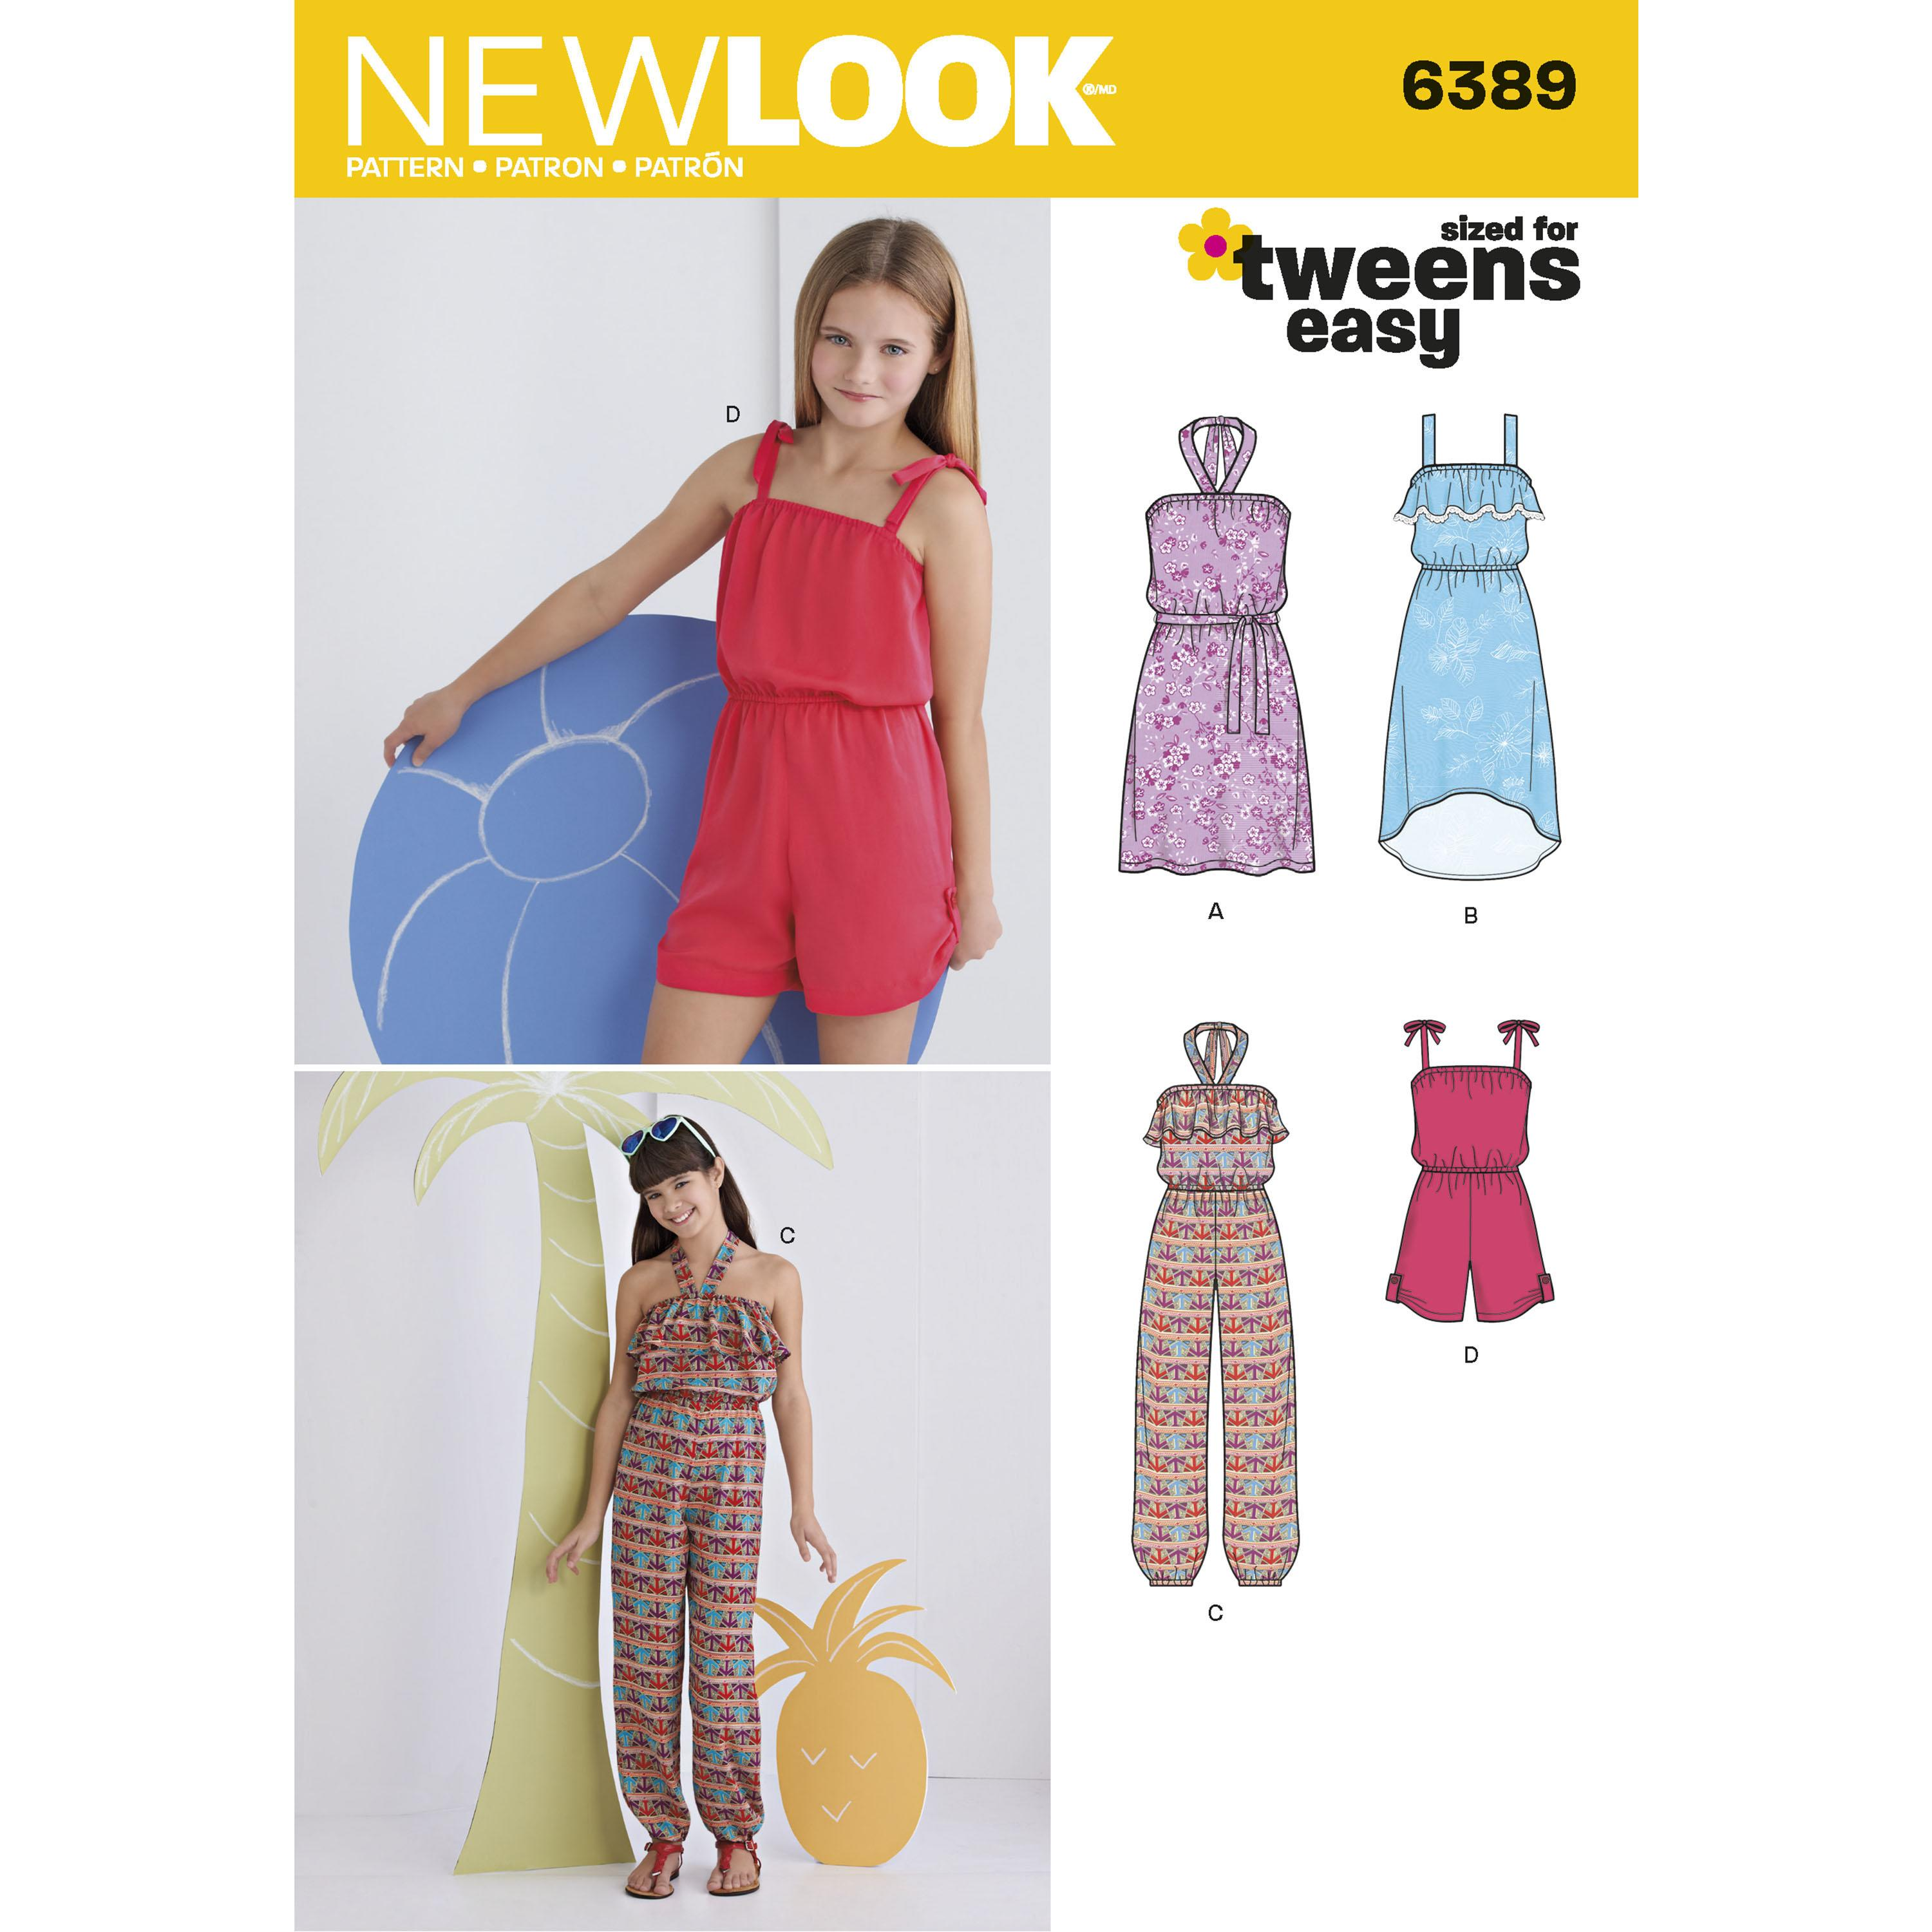 NewLook N6389 Girls' Easy Jumpsuit, Romper and Dresses